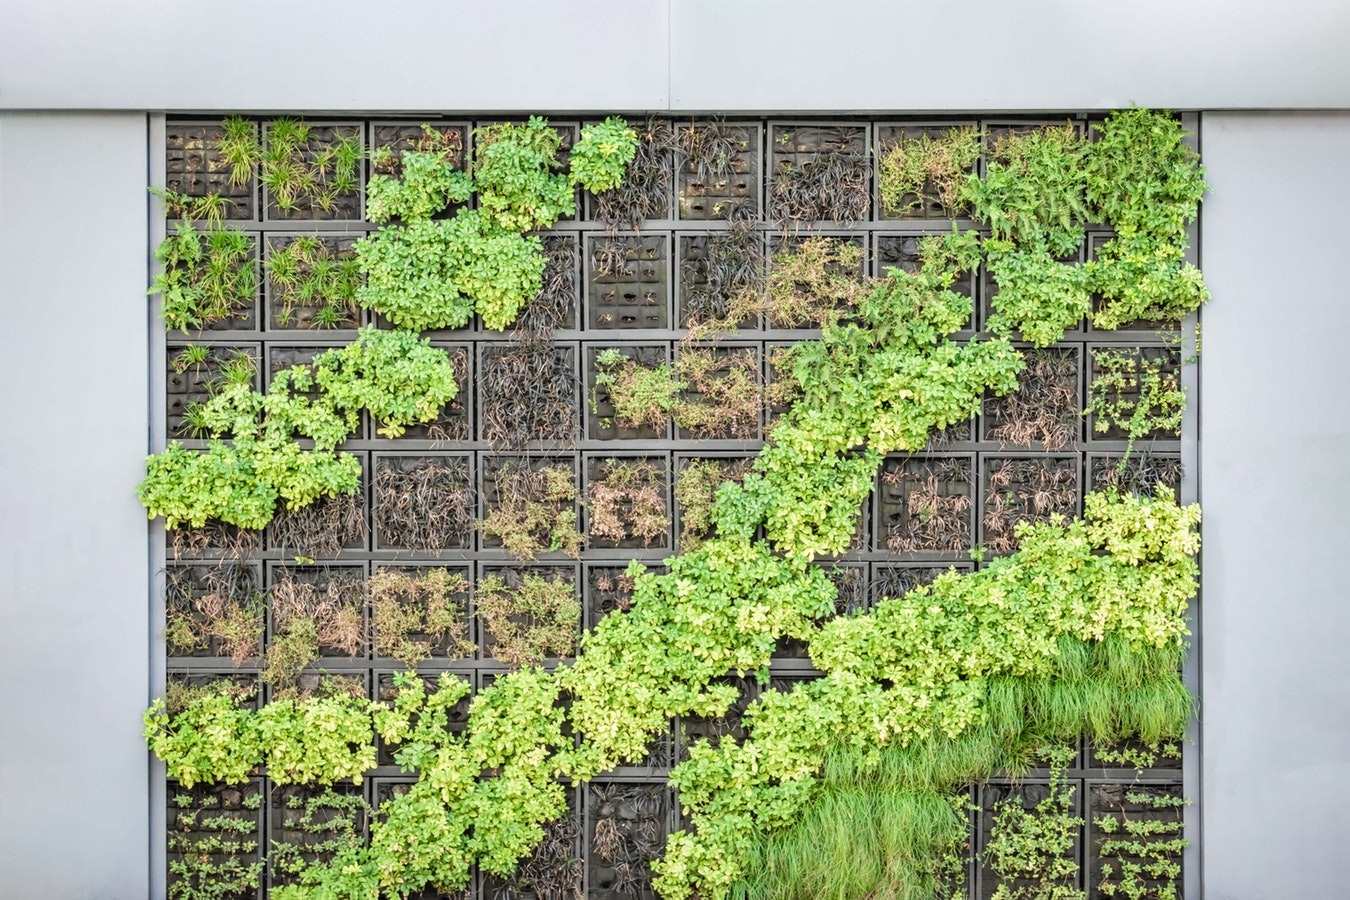 Do It Yourself Home Design: Dos And Don'ts When Building Your Own Vertical Garden